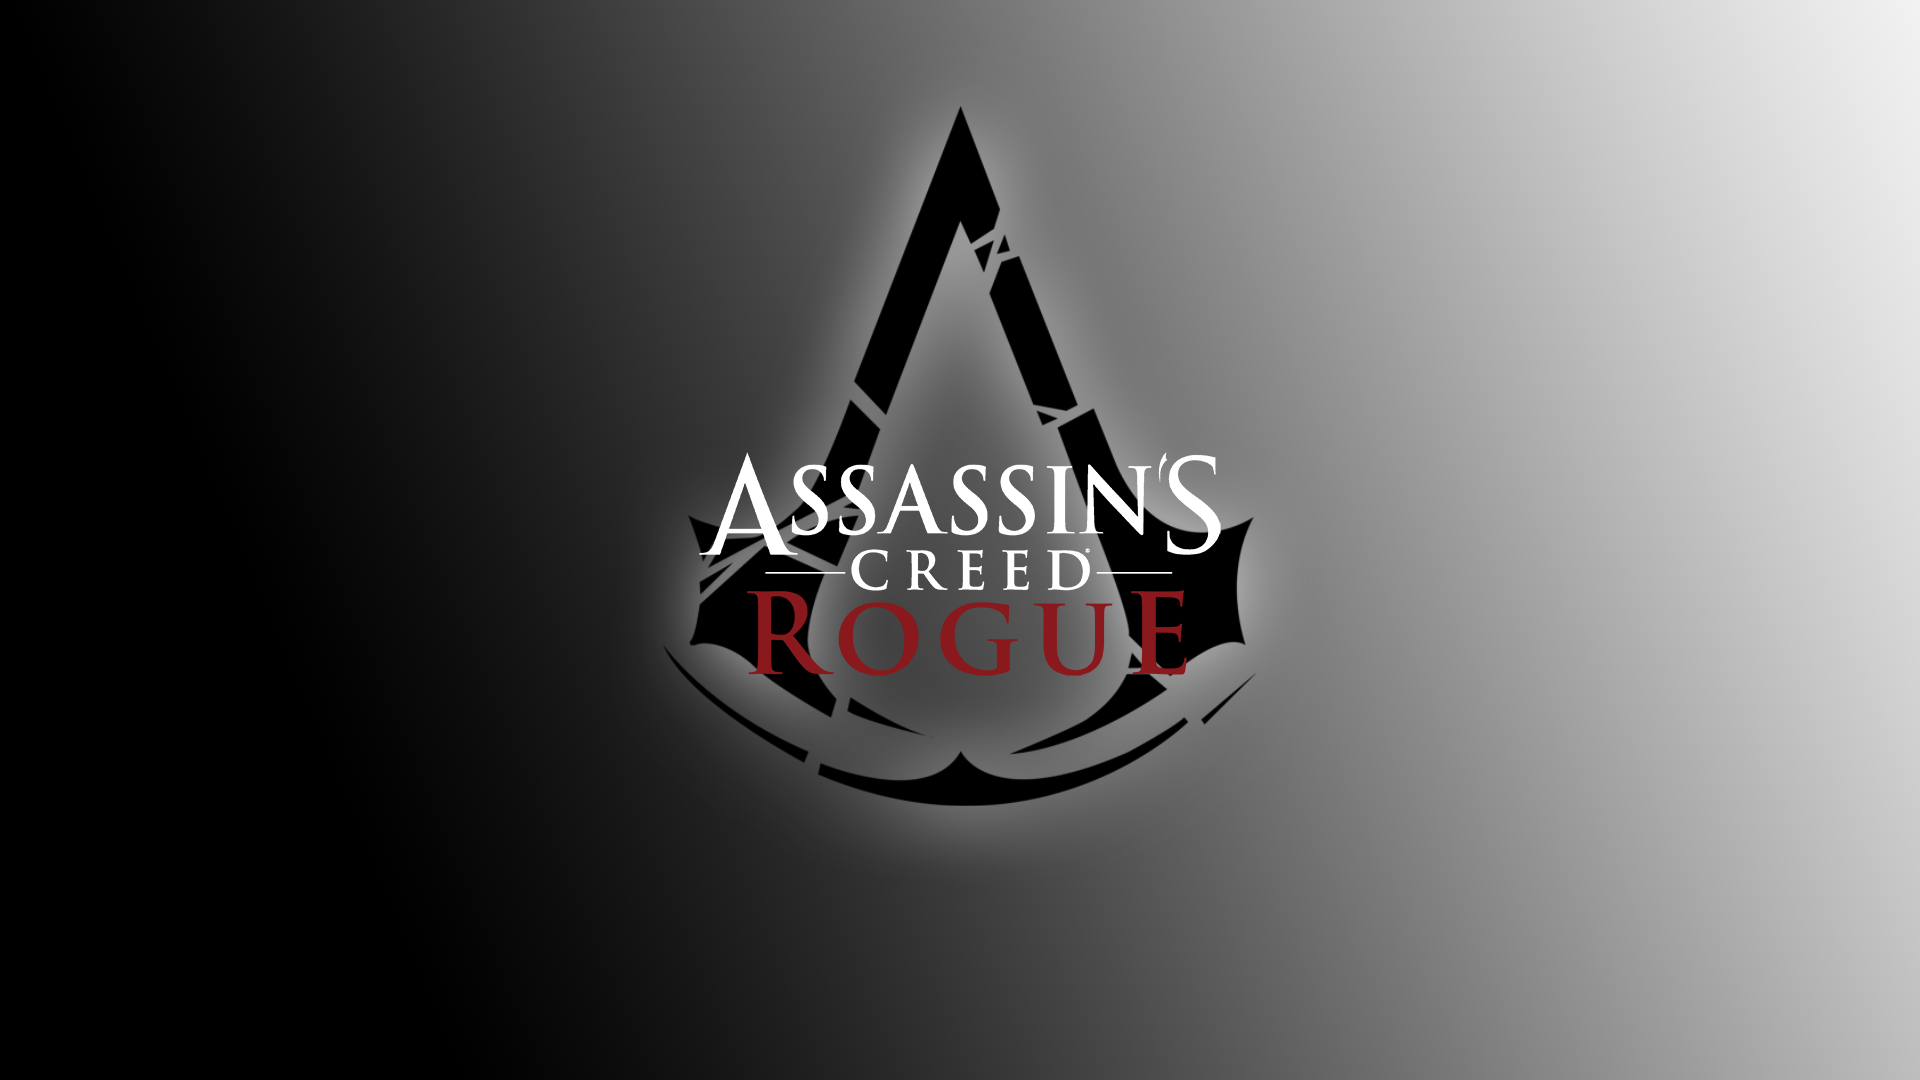 assassins creed rogue full hd wallpaper and background image